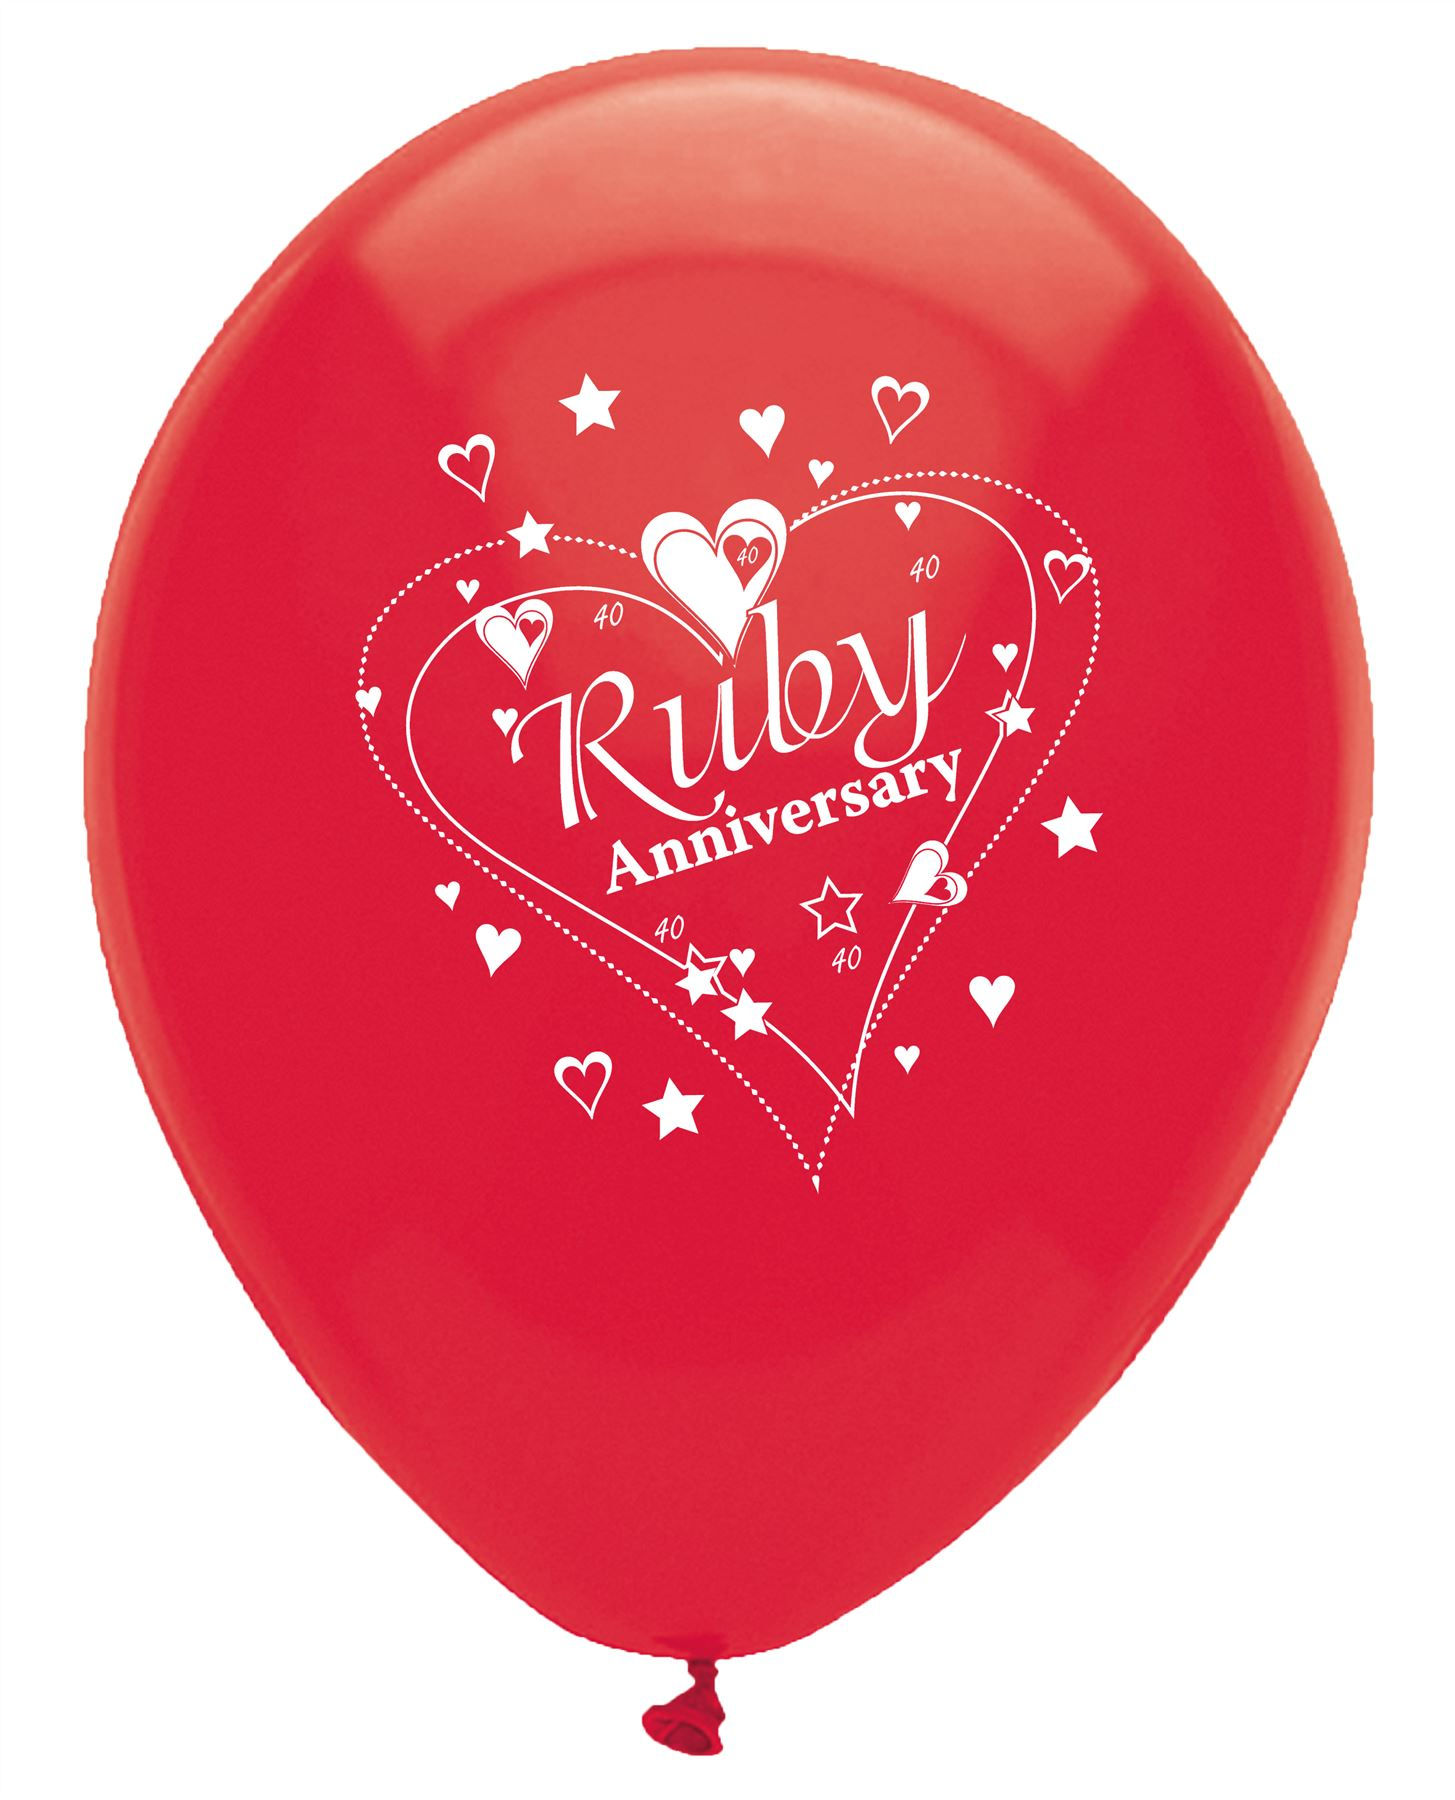 ruby 40th wedding anniversary party decorations balloons. Black Bedroom Furniture Sets. Home Design Ideas